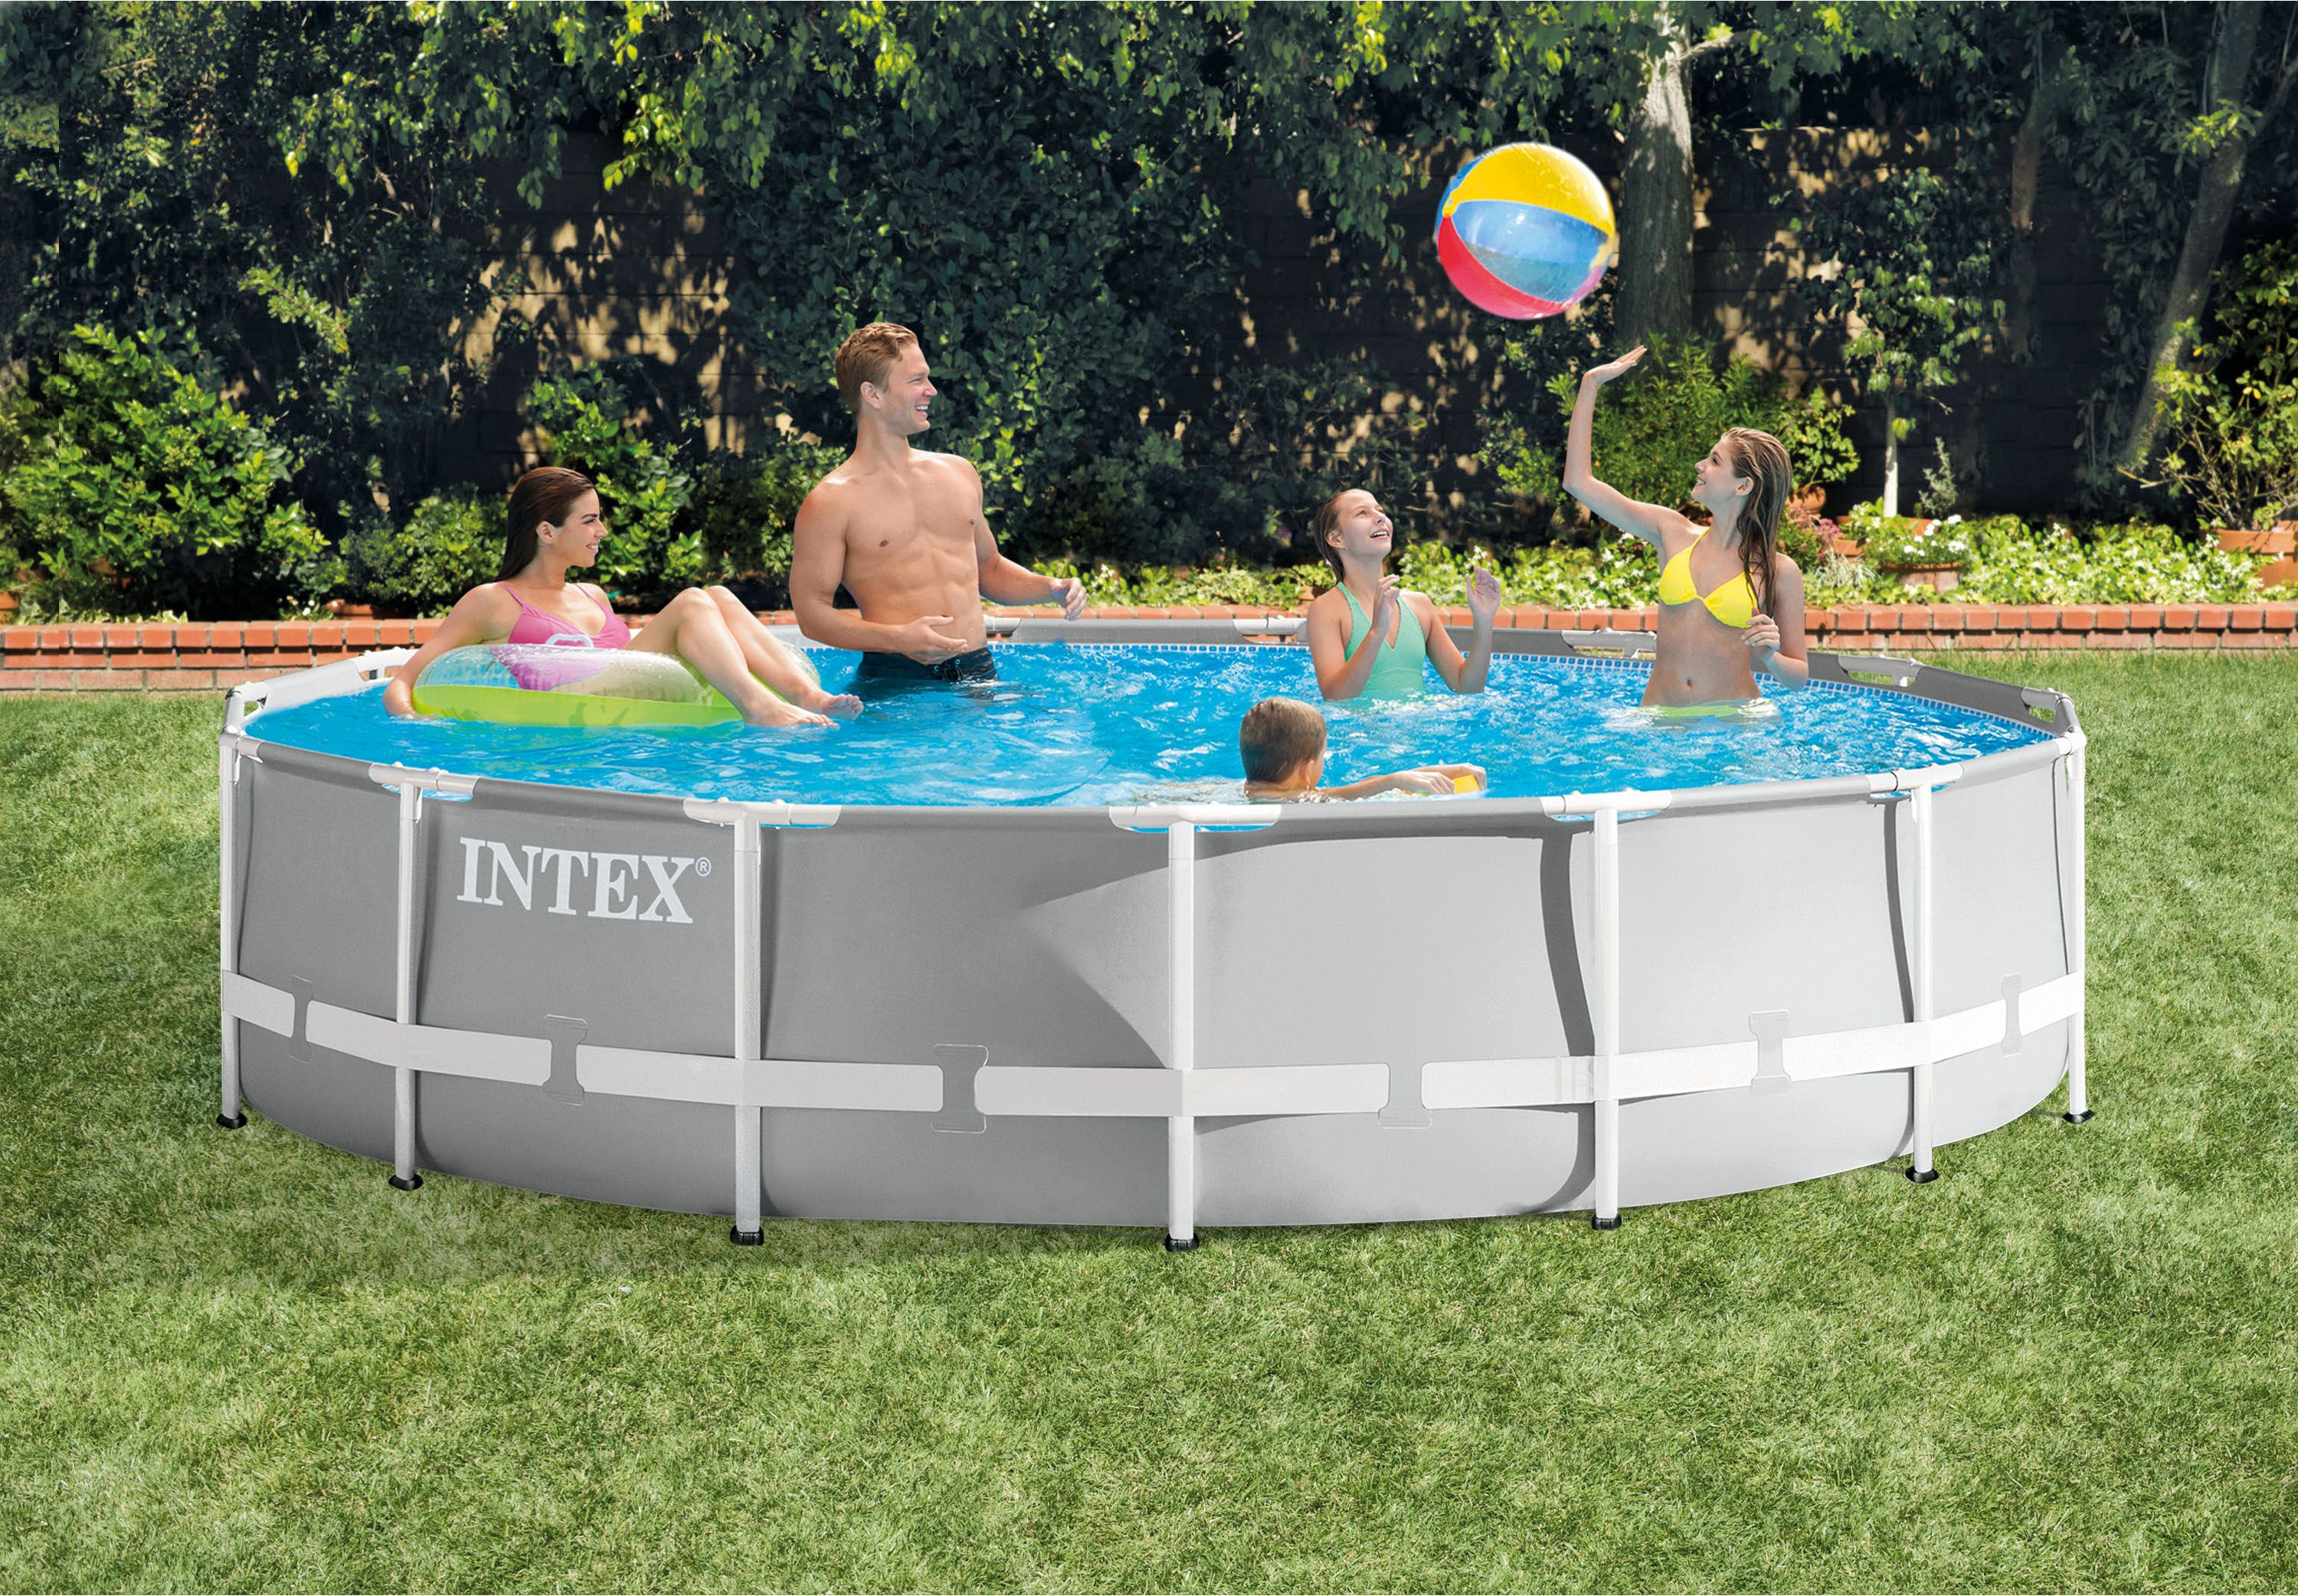 Action Zwembad Intex Intex 4m X 2m X 1m Deep Rectangular Ultra Frame Swimming Pool With